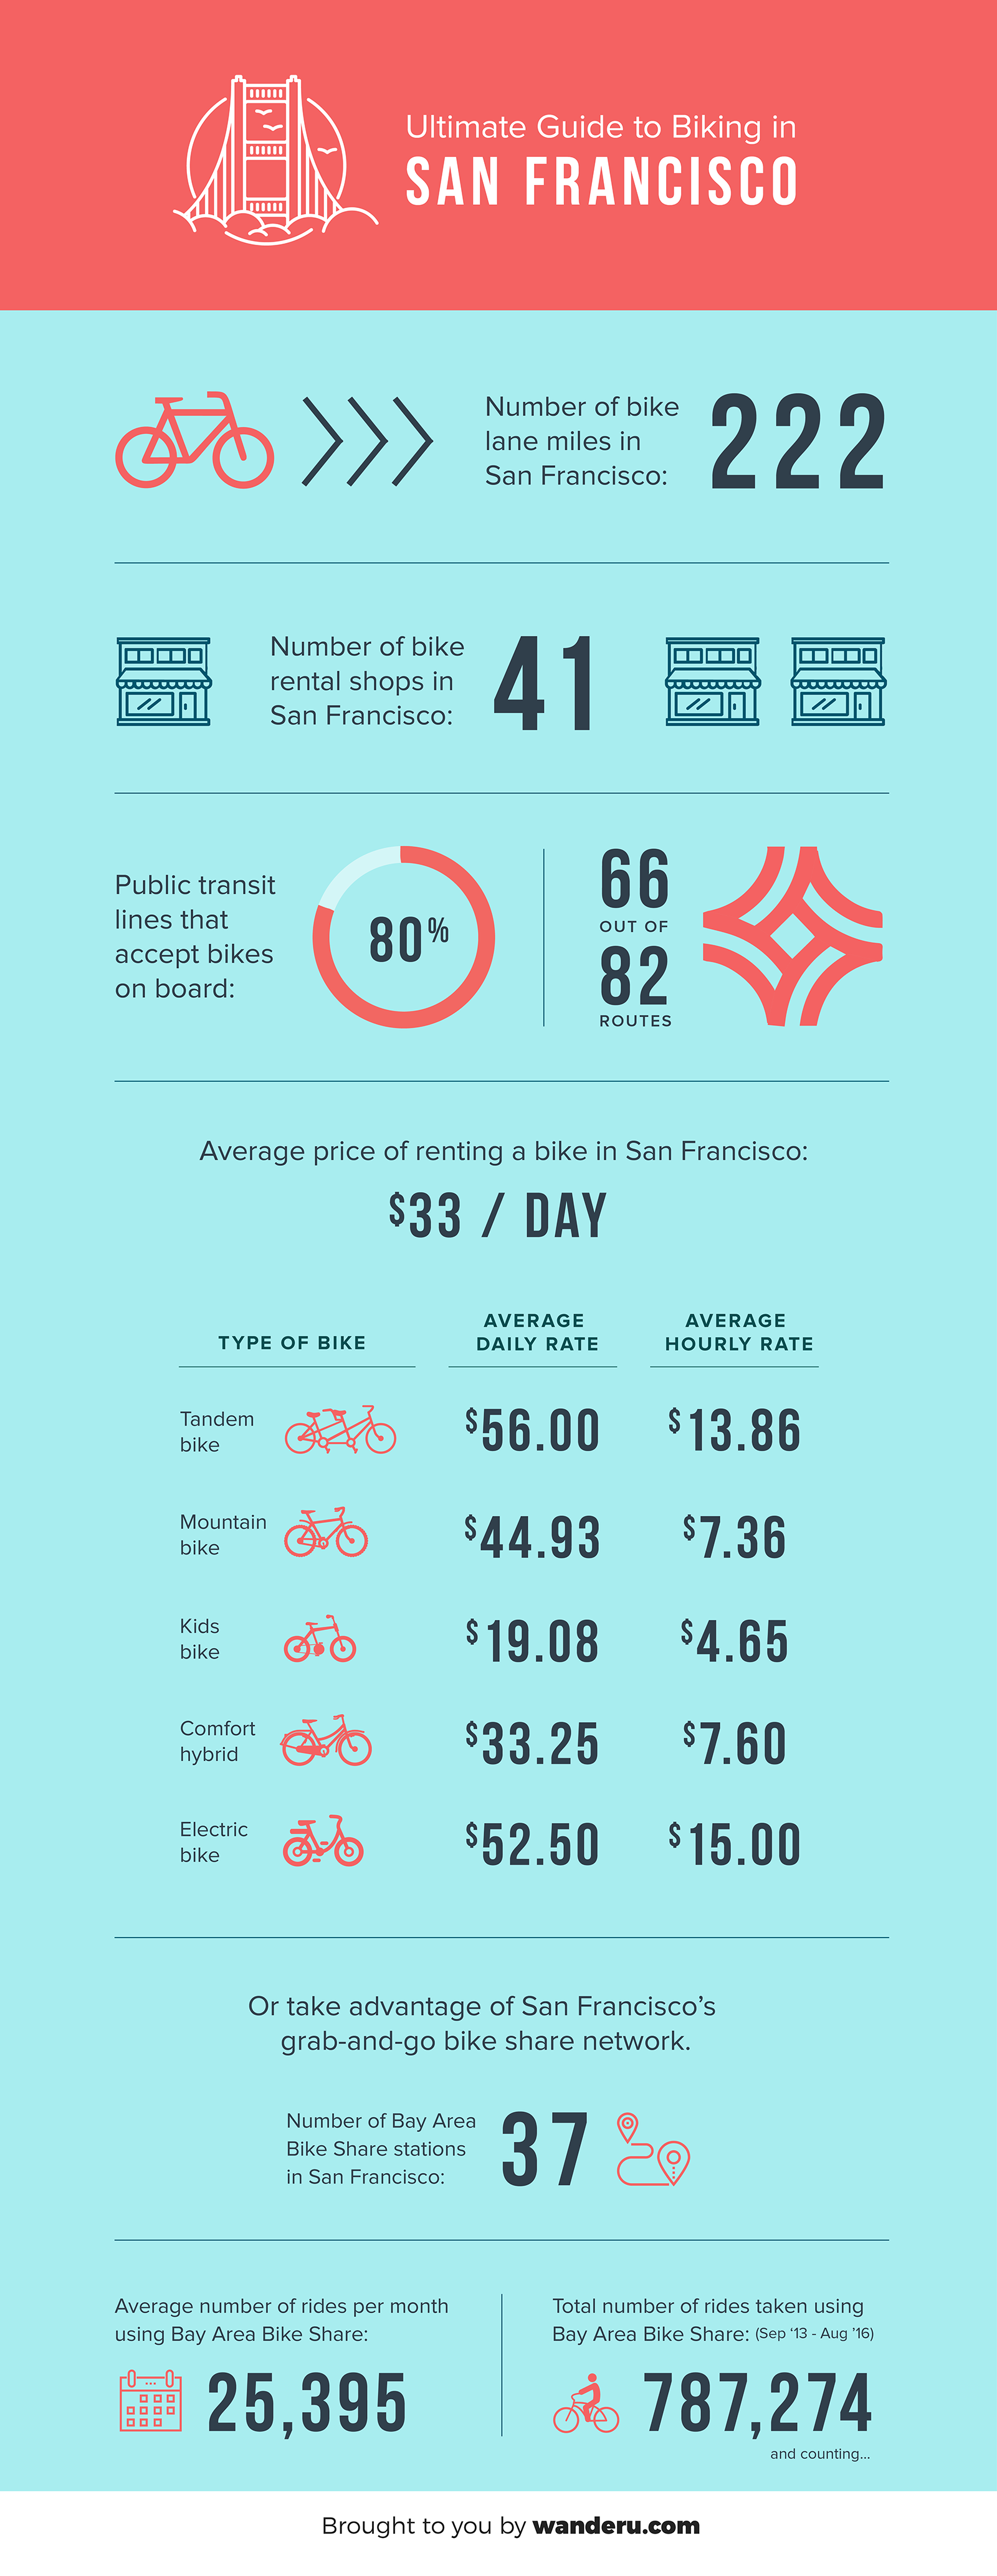 Your Ultimate Guide to Biking in San Francisco